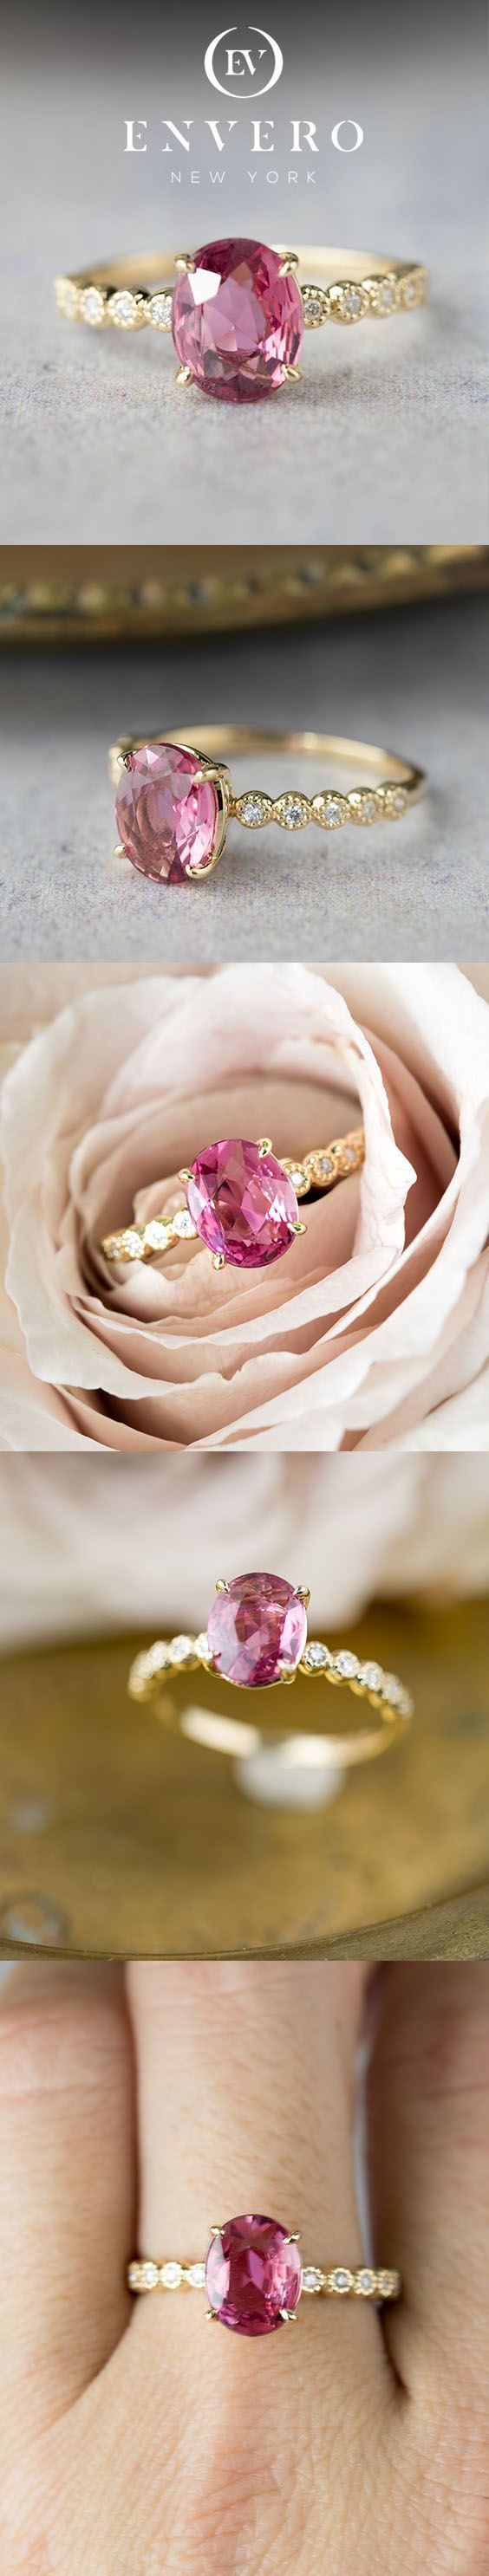 14 gold pink tourmaline diamond engagment ring will make an unique engagement ring for women who wants something bit different from ordinary diamond engagement ring. #UniqueEngagementRings